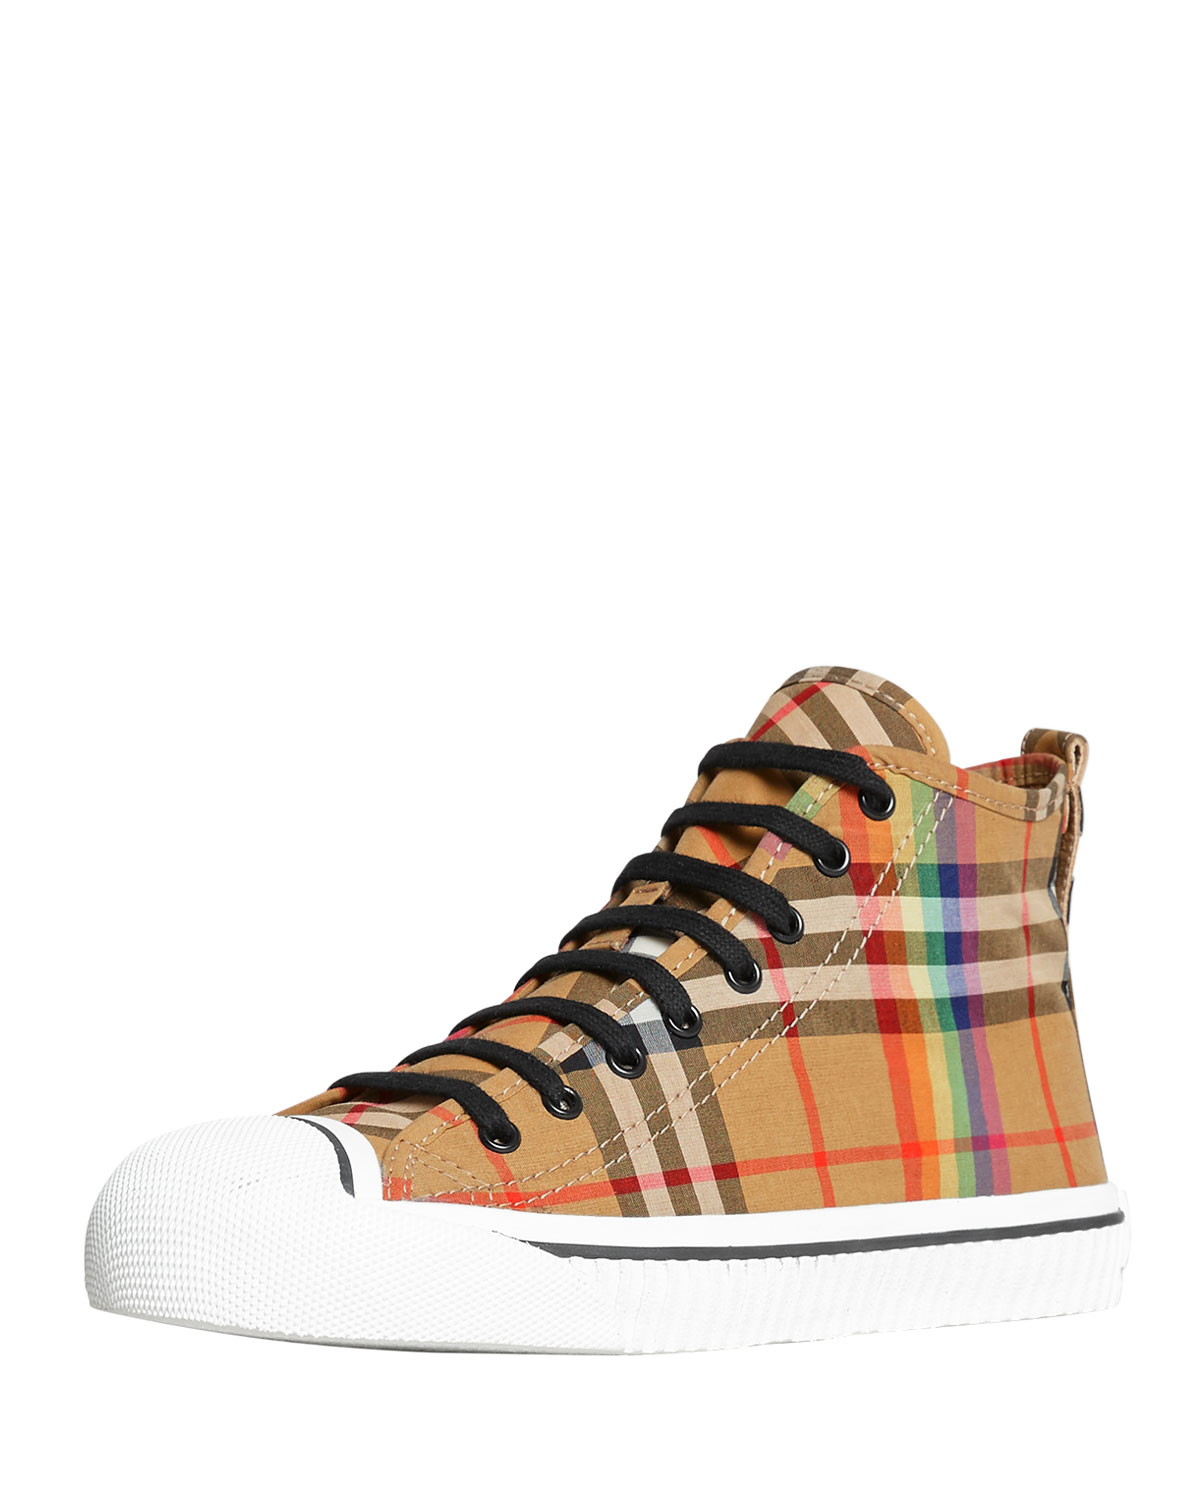 burberry sneakers high top